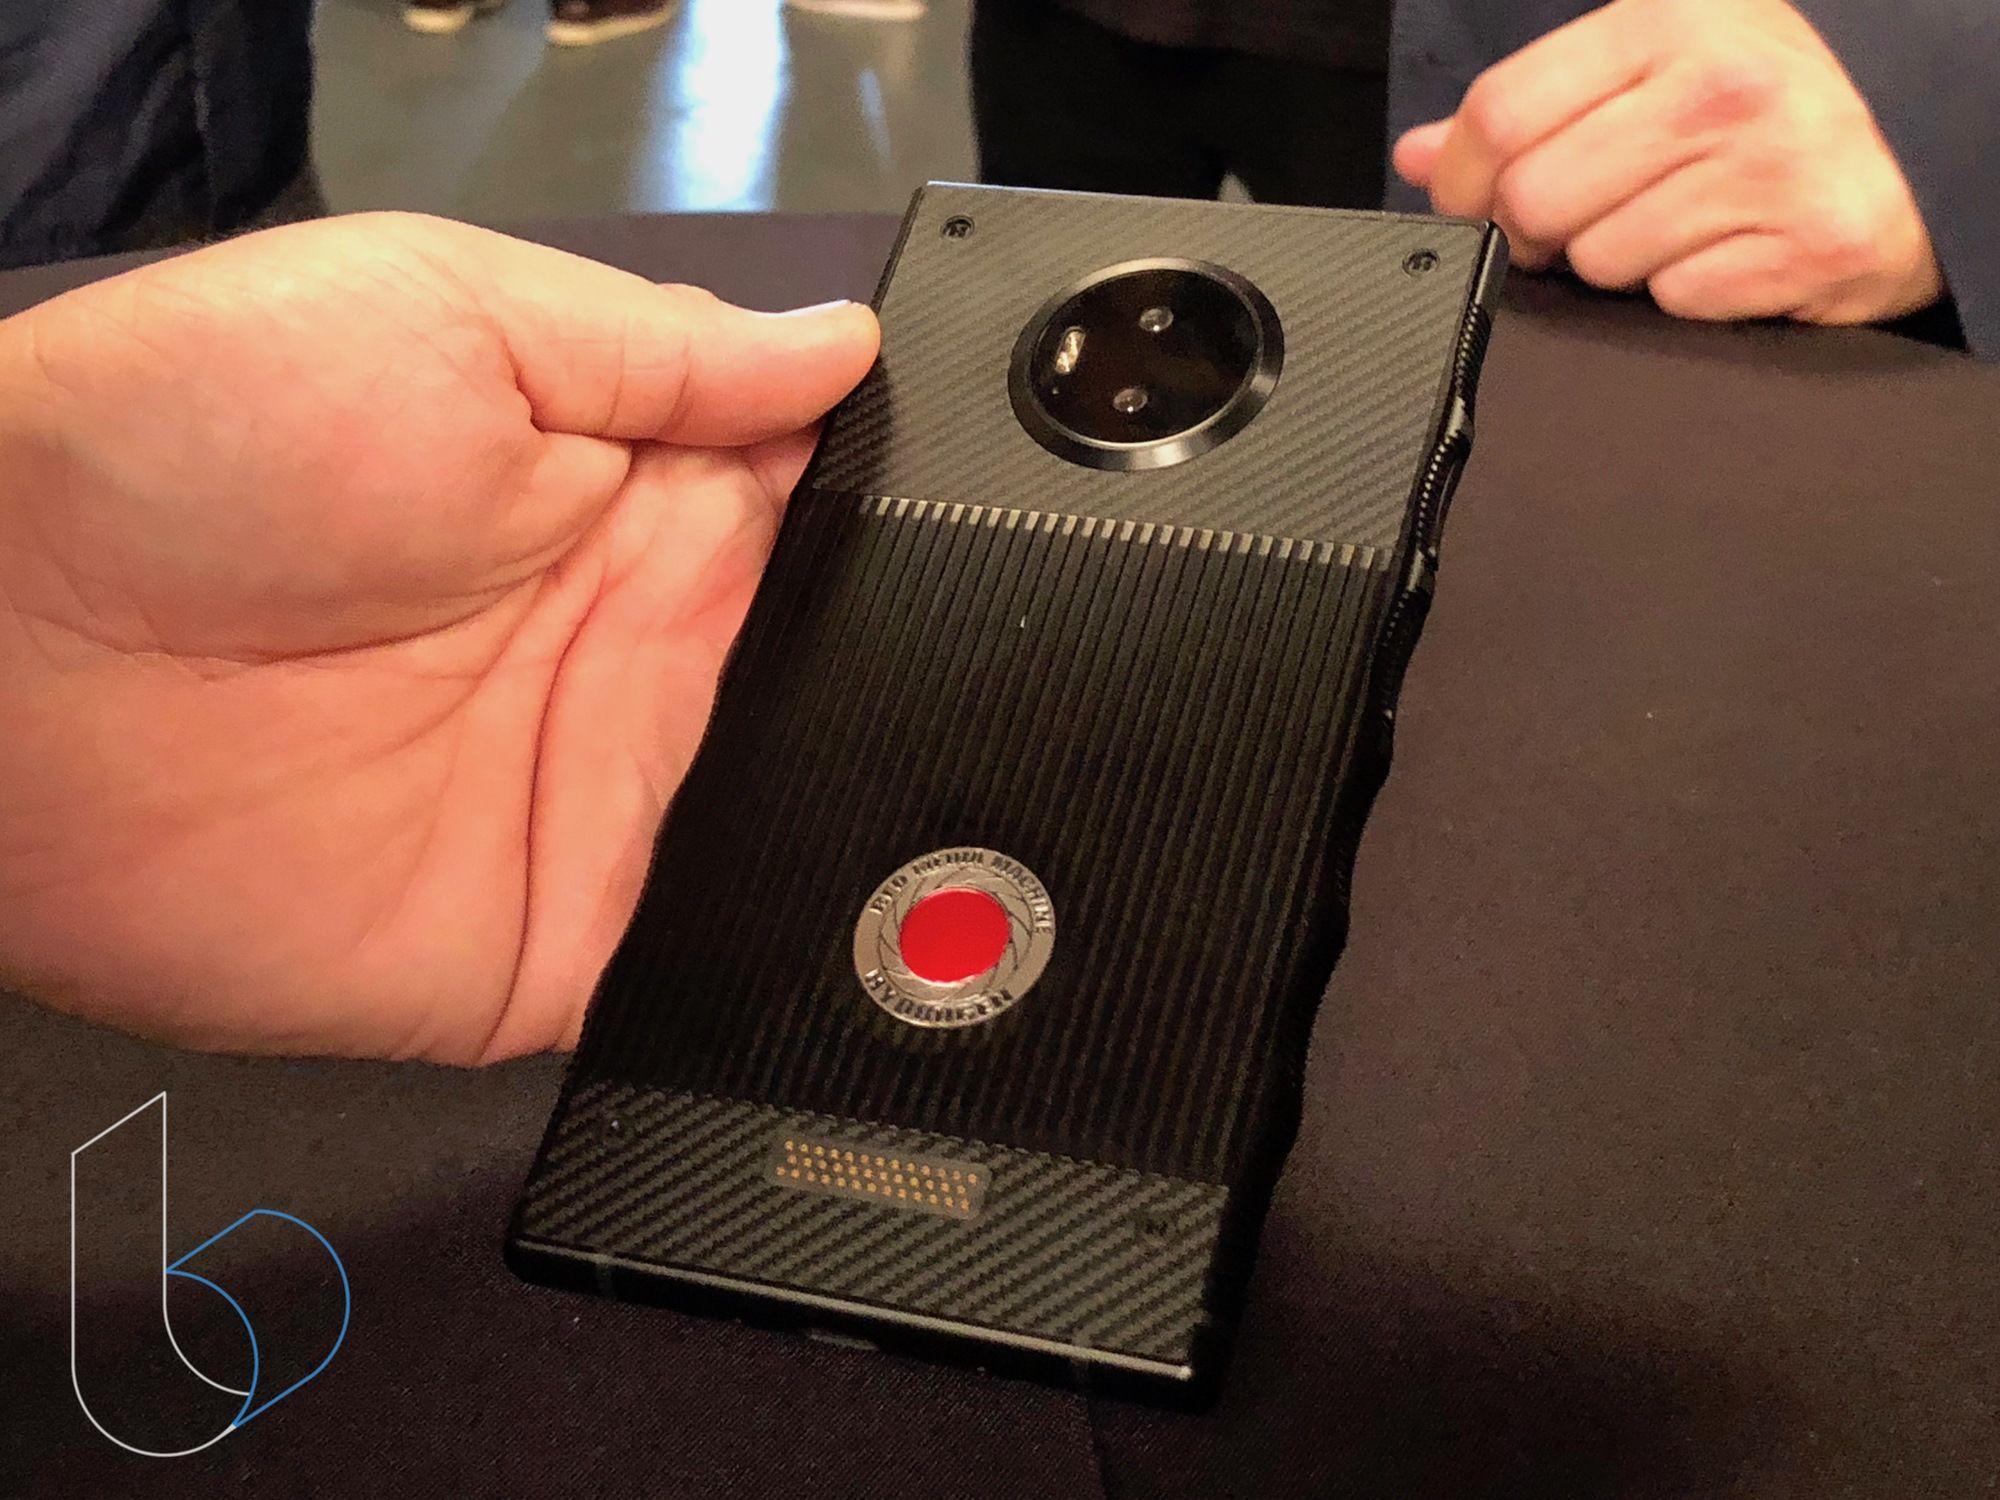 RED Hydrogen One hands-on: This is no ordinary smartphone | Nerd ...